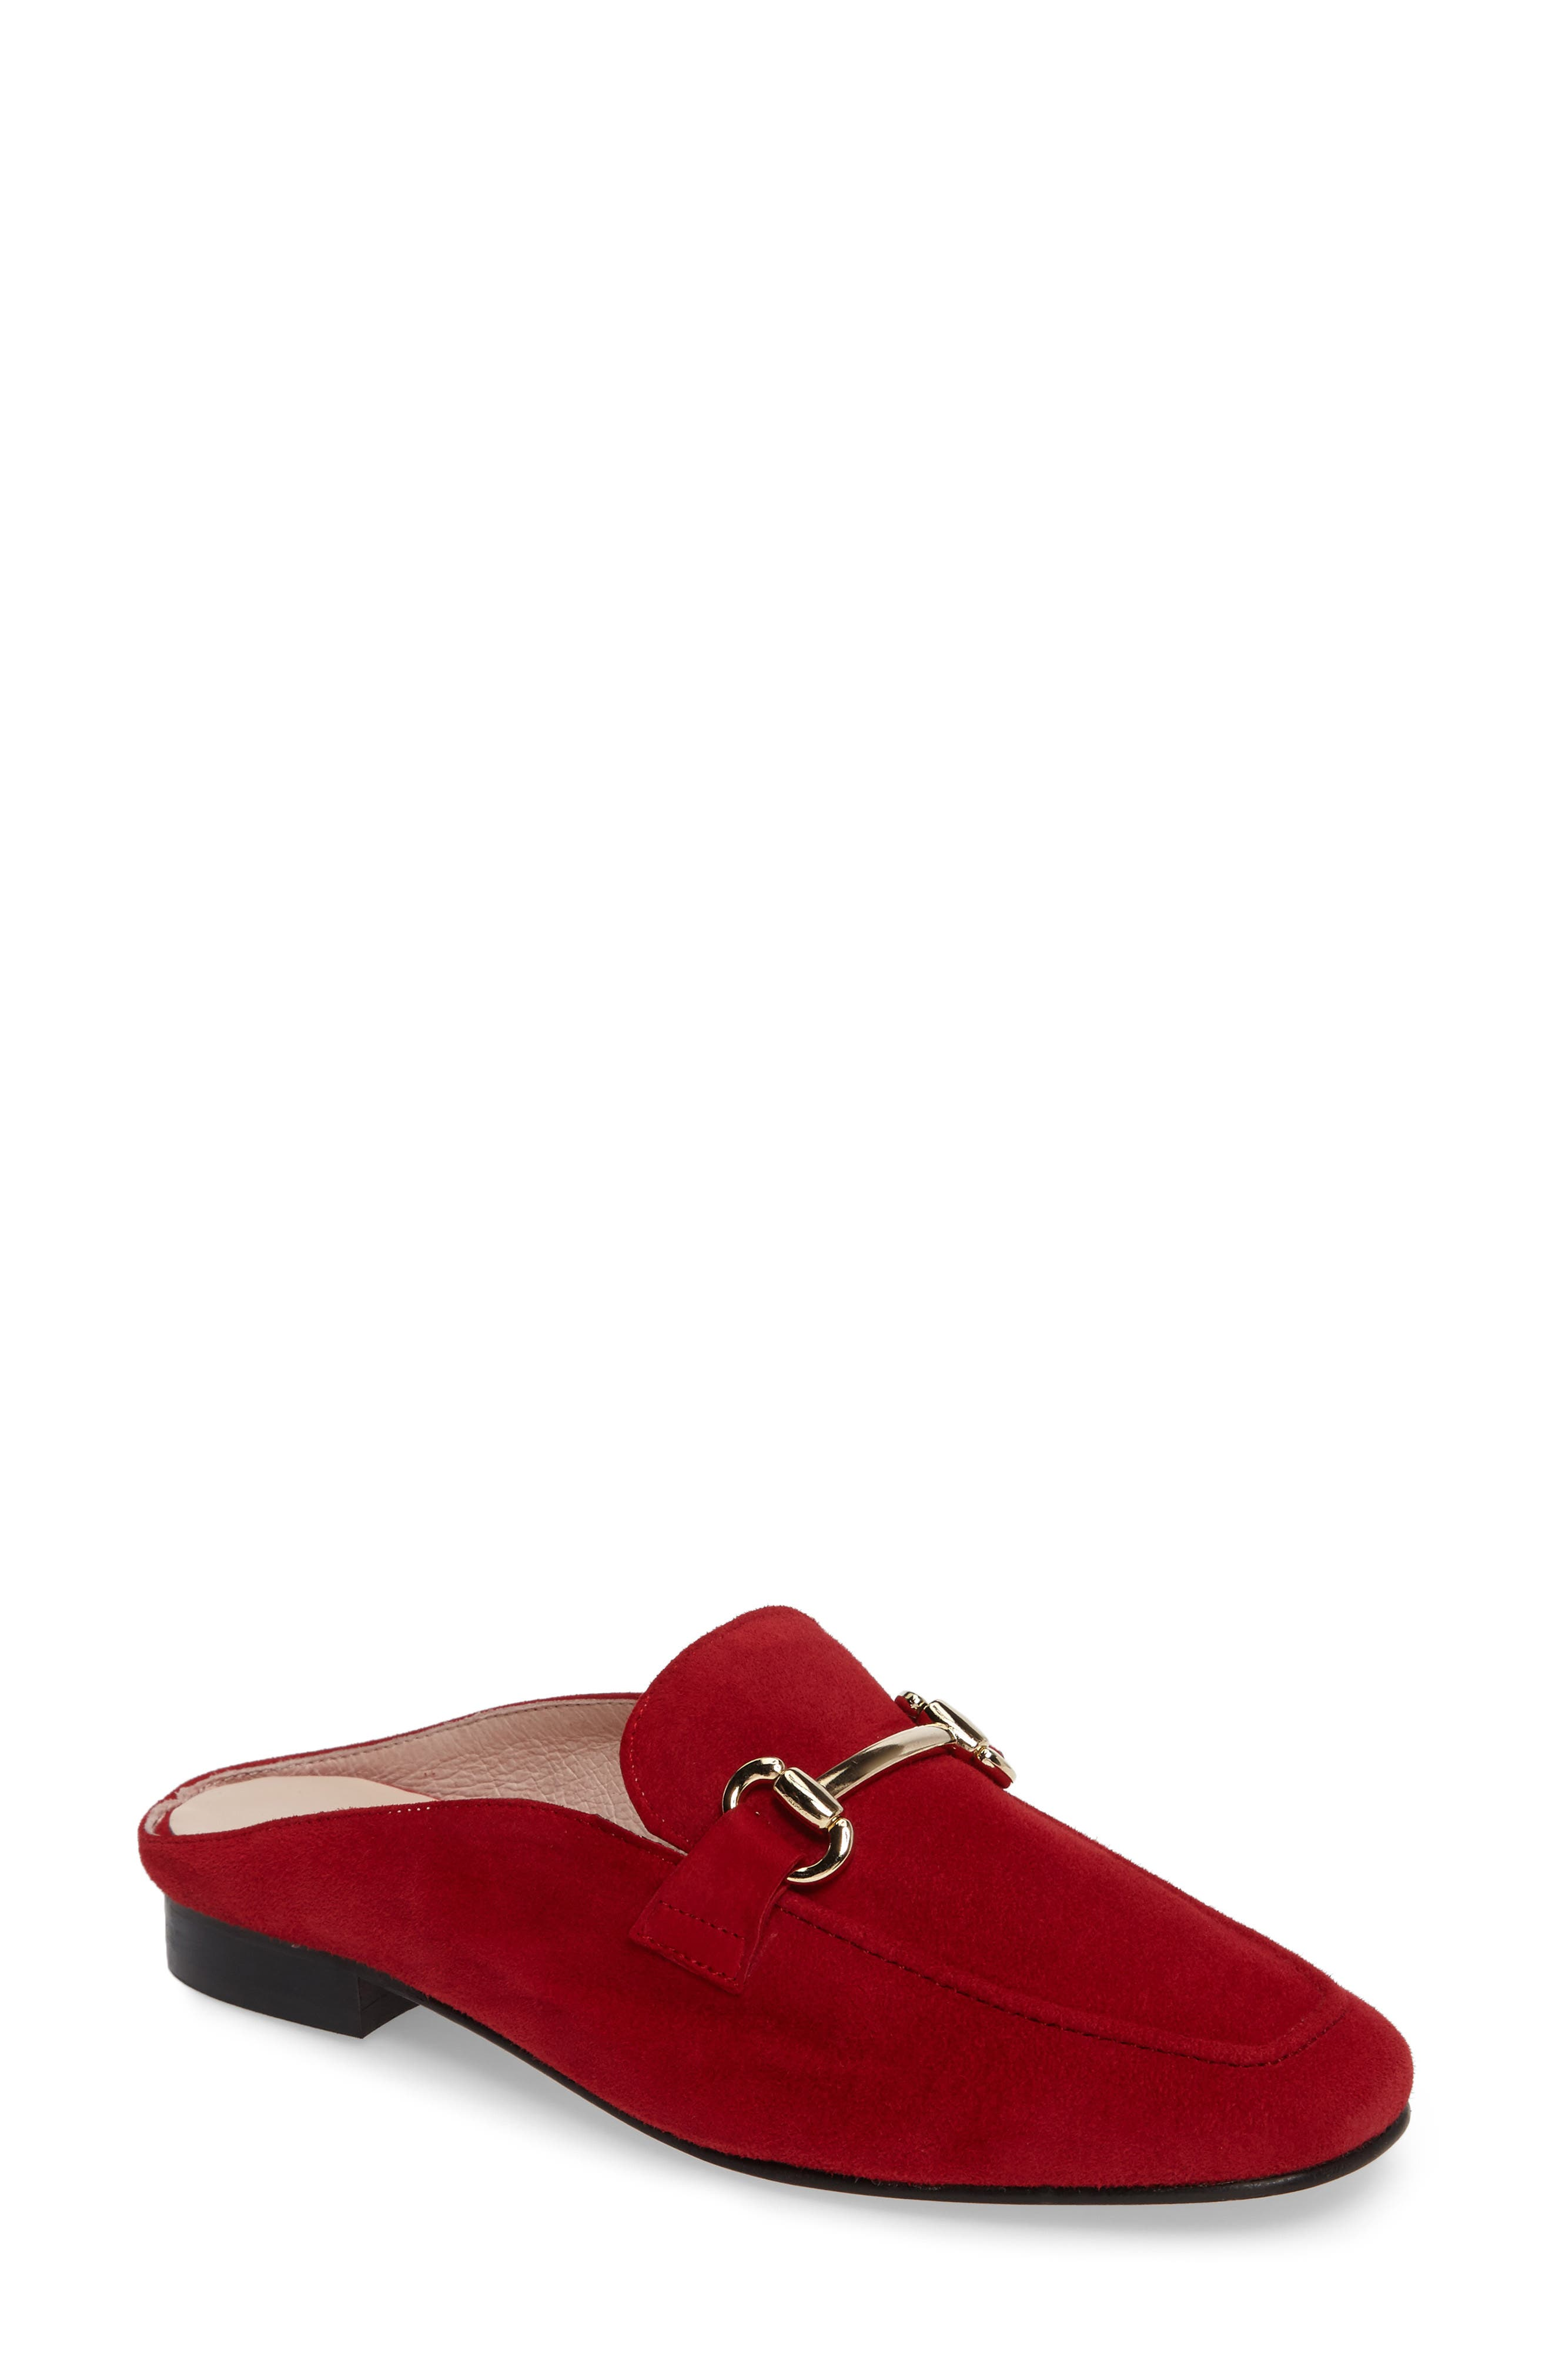 Sorrento Loafer Mule,                             Main thumbnail 1, color,                             RED SUEDE